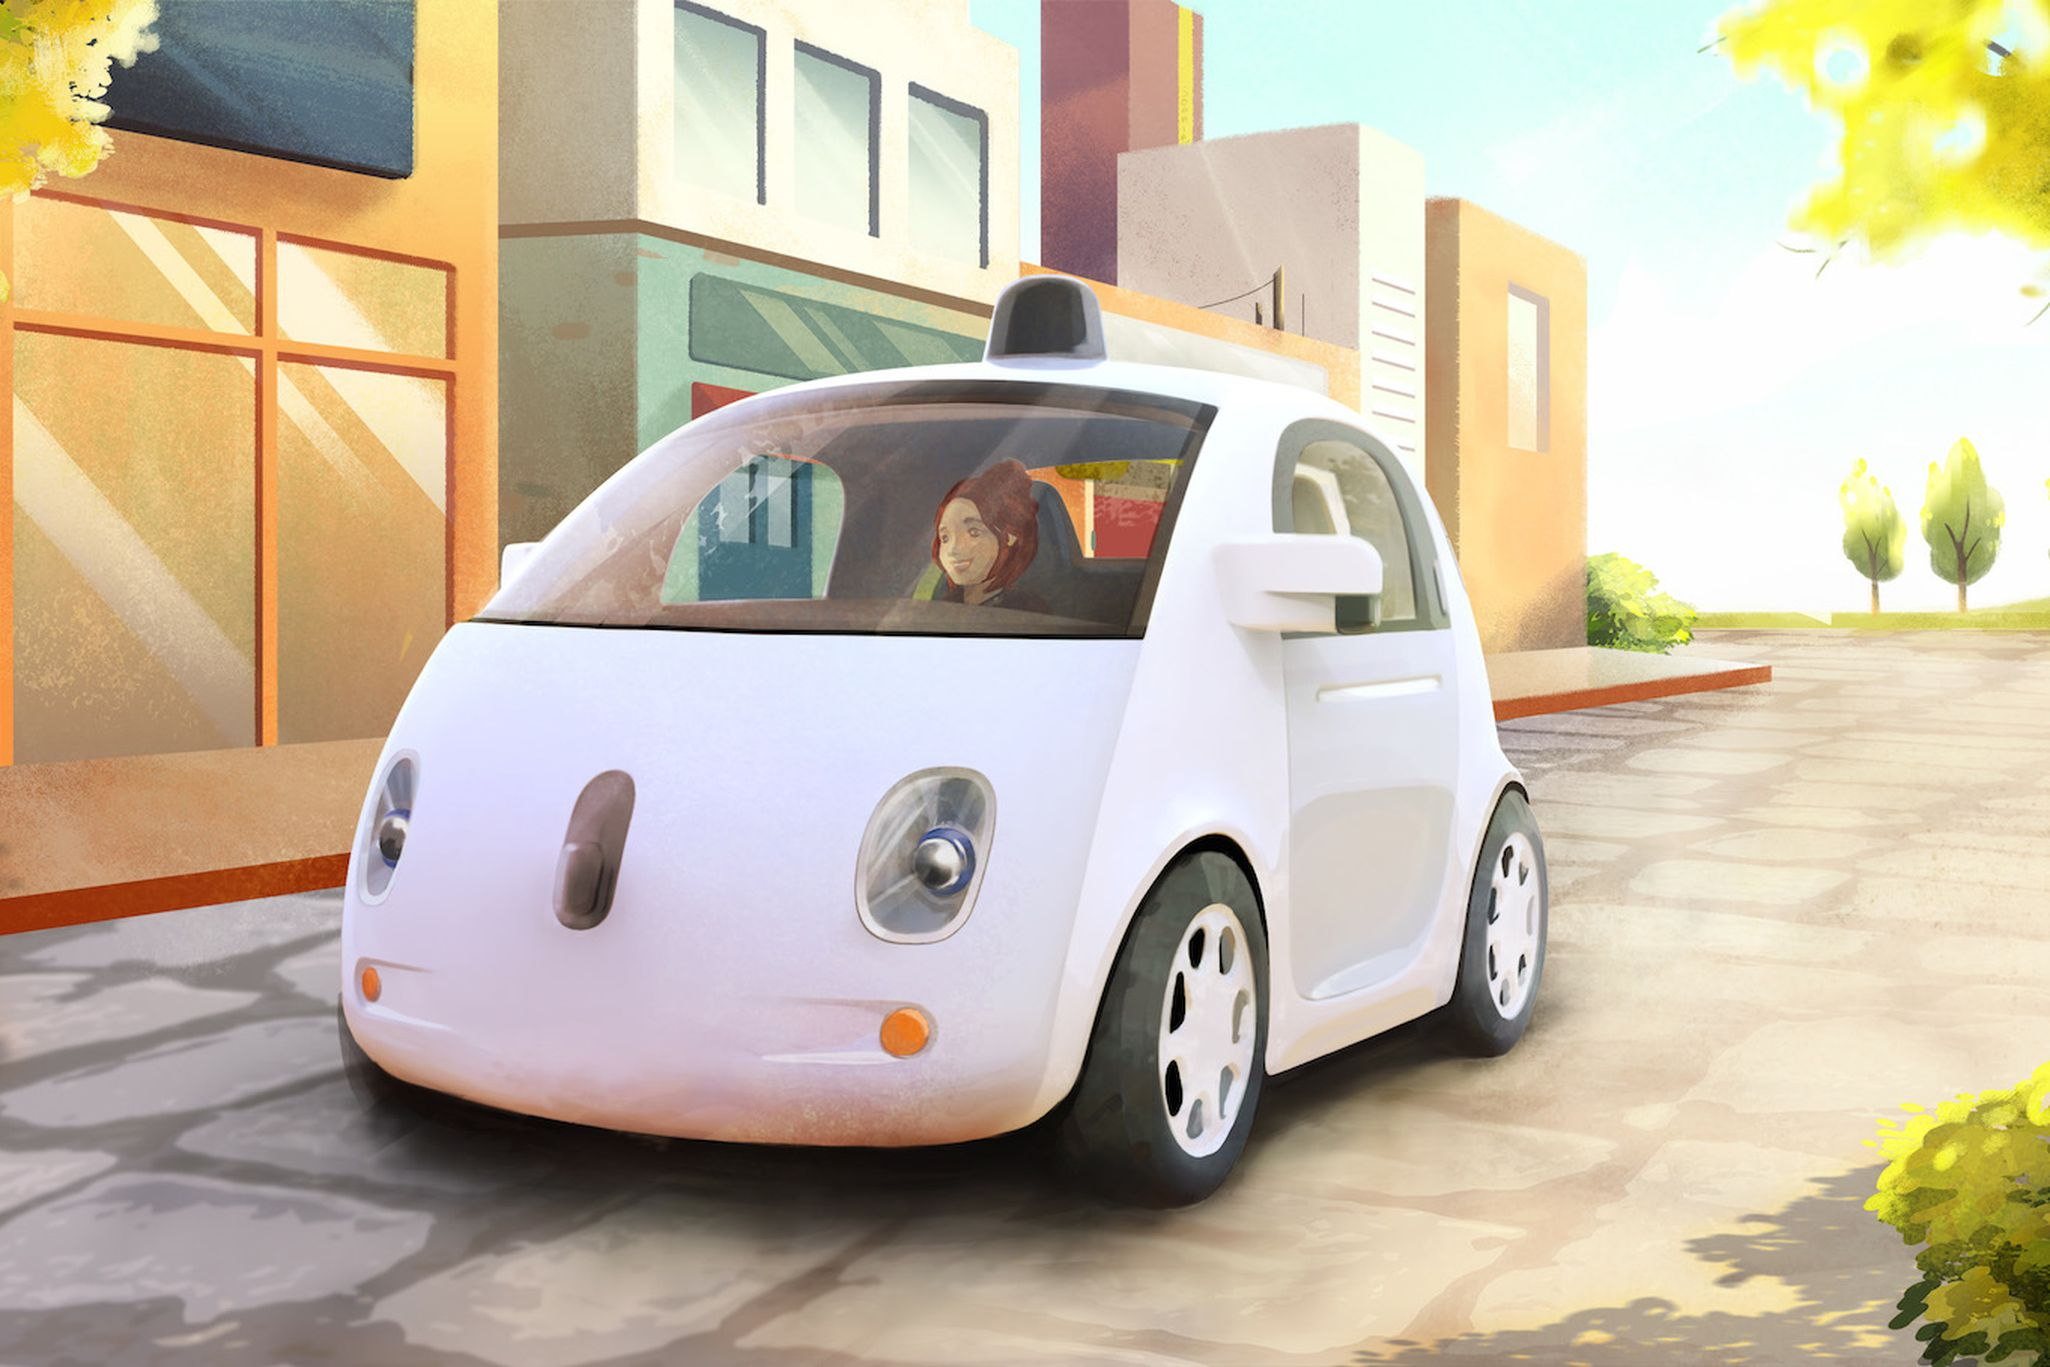 Speaking About Self Driving Cars Last September Elon Musk Preached Caution The Man Who Wants To Send Us All E And Shuttle Between Cities At